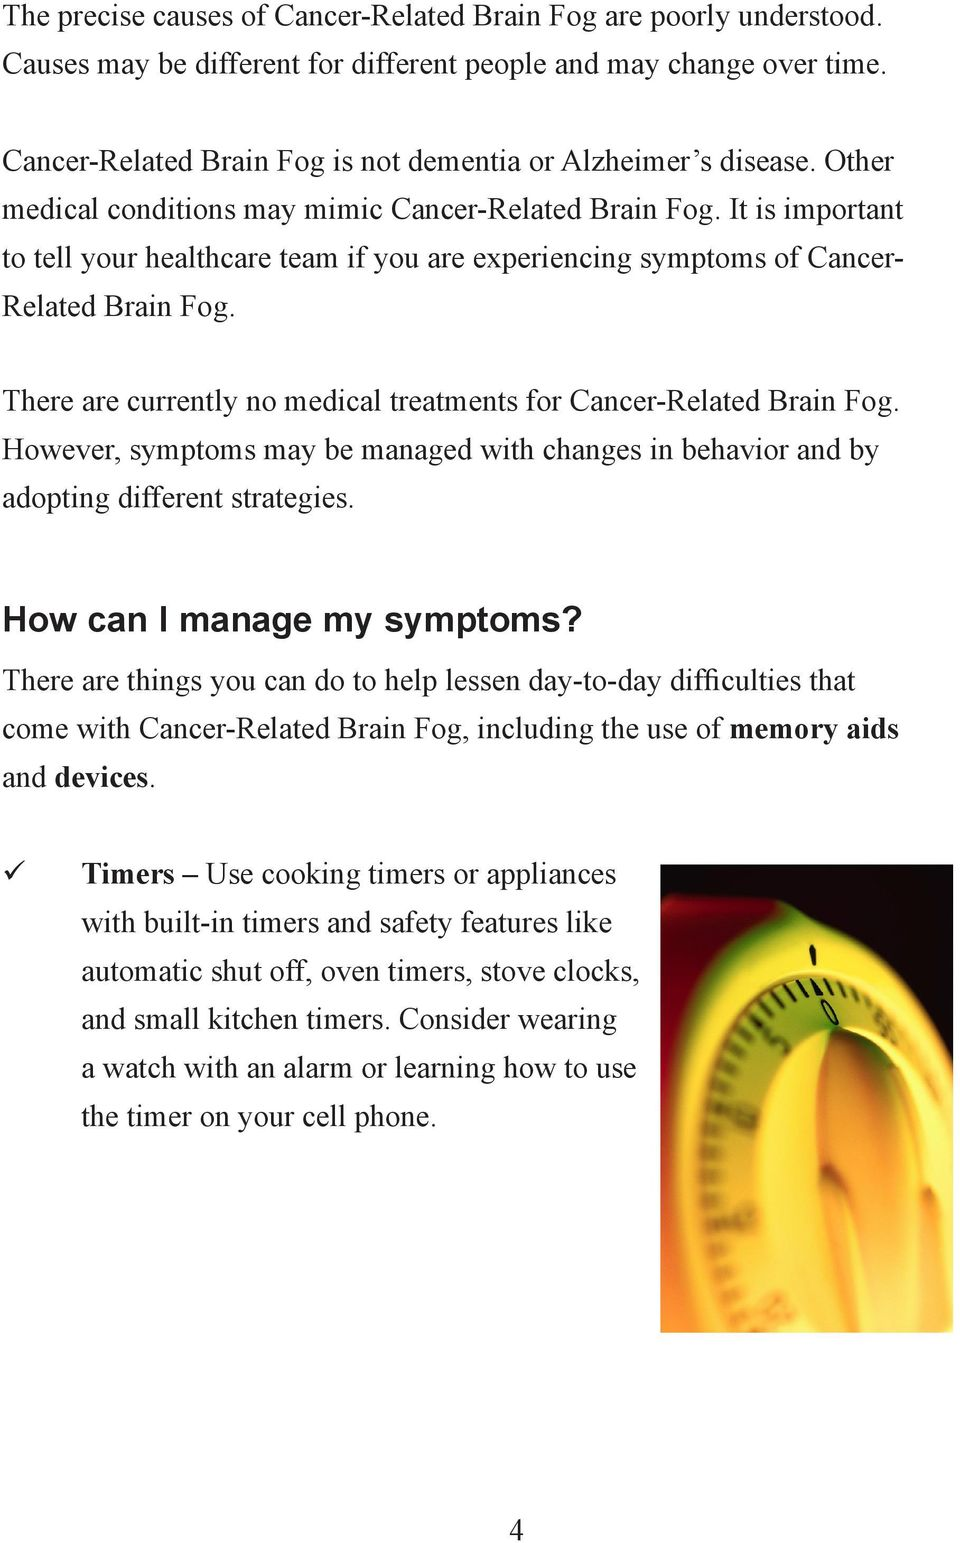 It is important to tell your healthcare team if you are experiencing symptoms of Cancer- Related Brain Fog. There are currently no medical treatments for Cancer-Related Brain Fog.